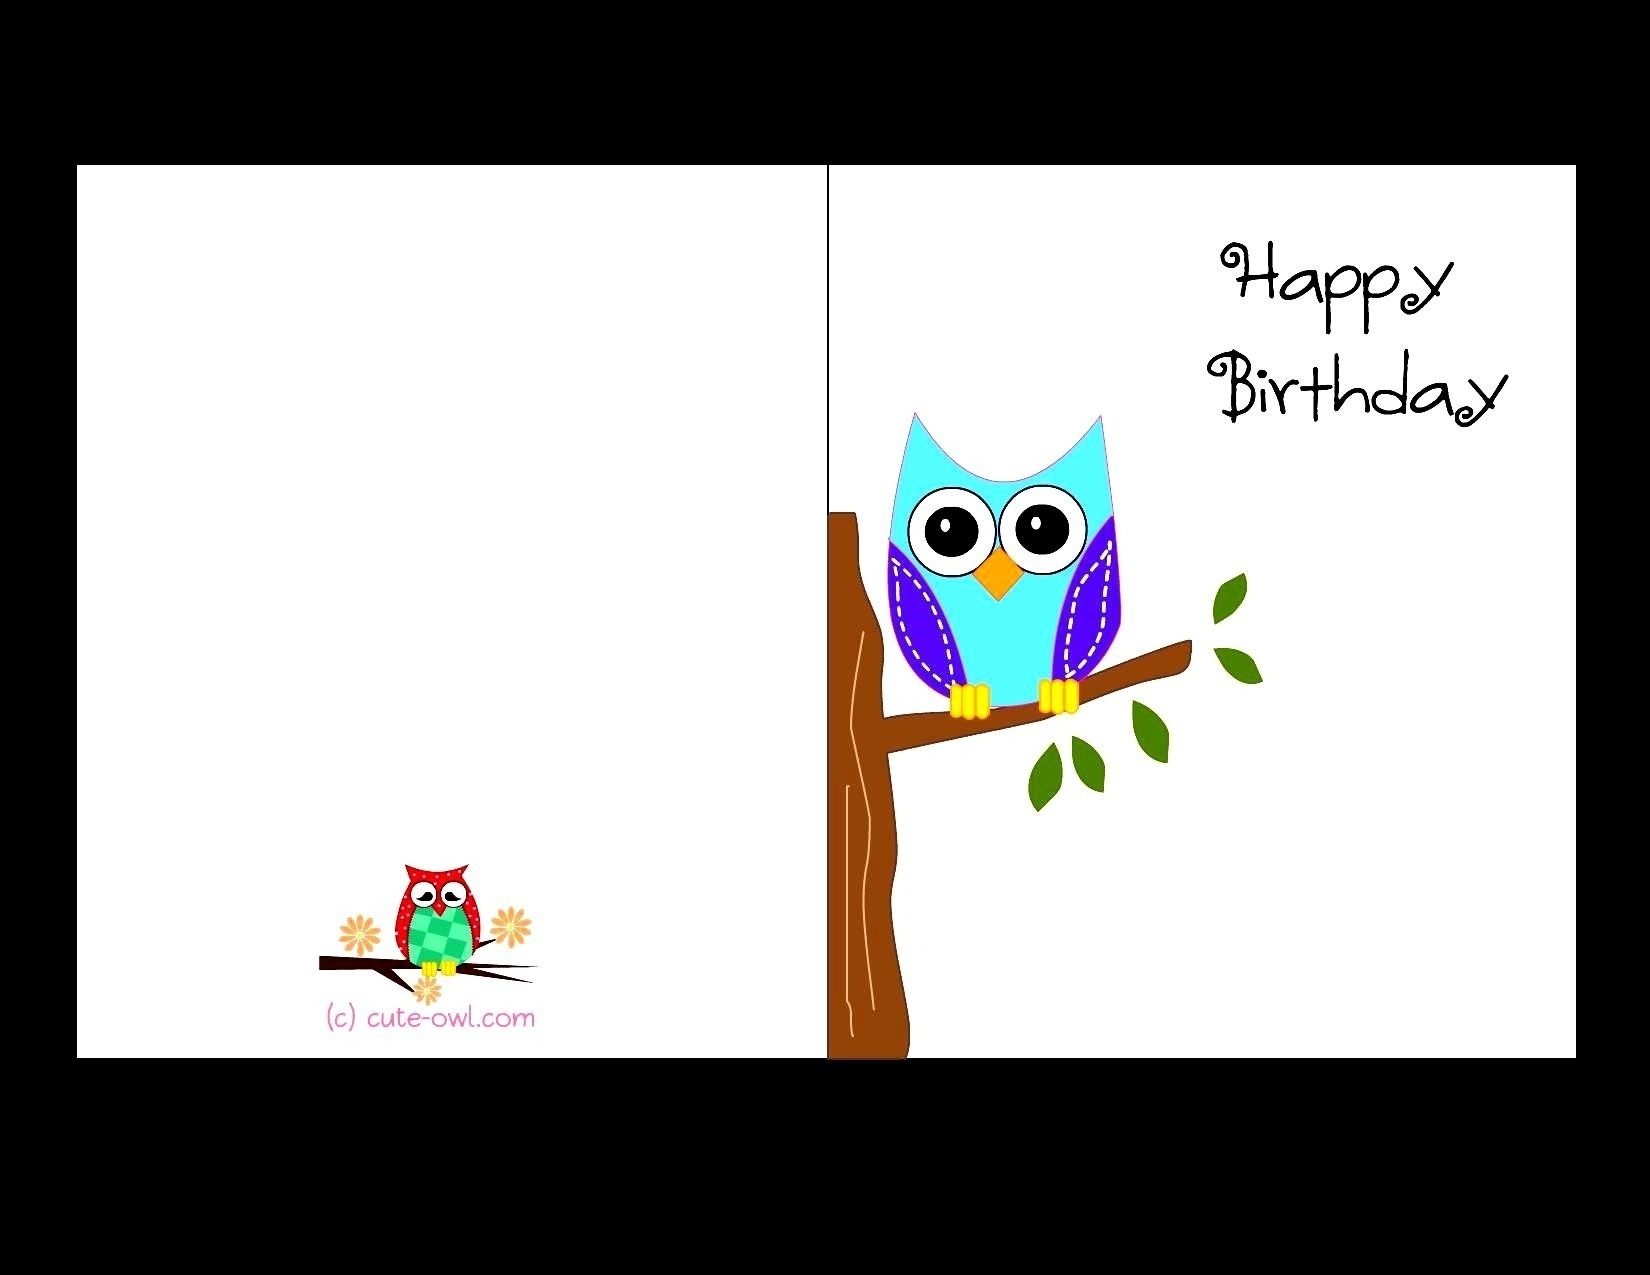 Free Printable Birthday Cards For Adults | World Of Label - Free Printable Greeting Cards No Sign Up